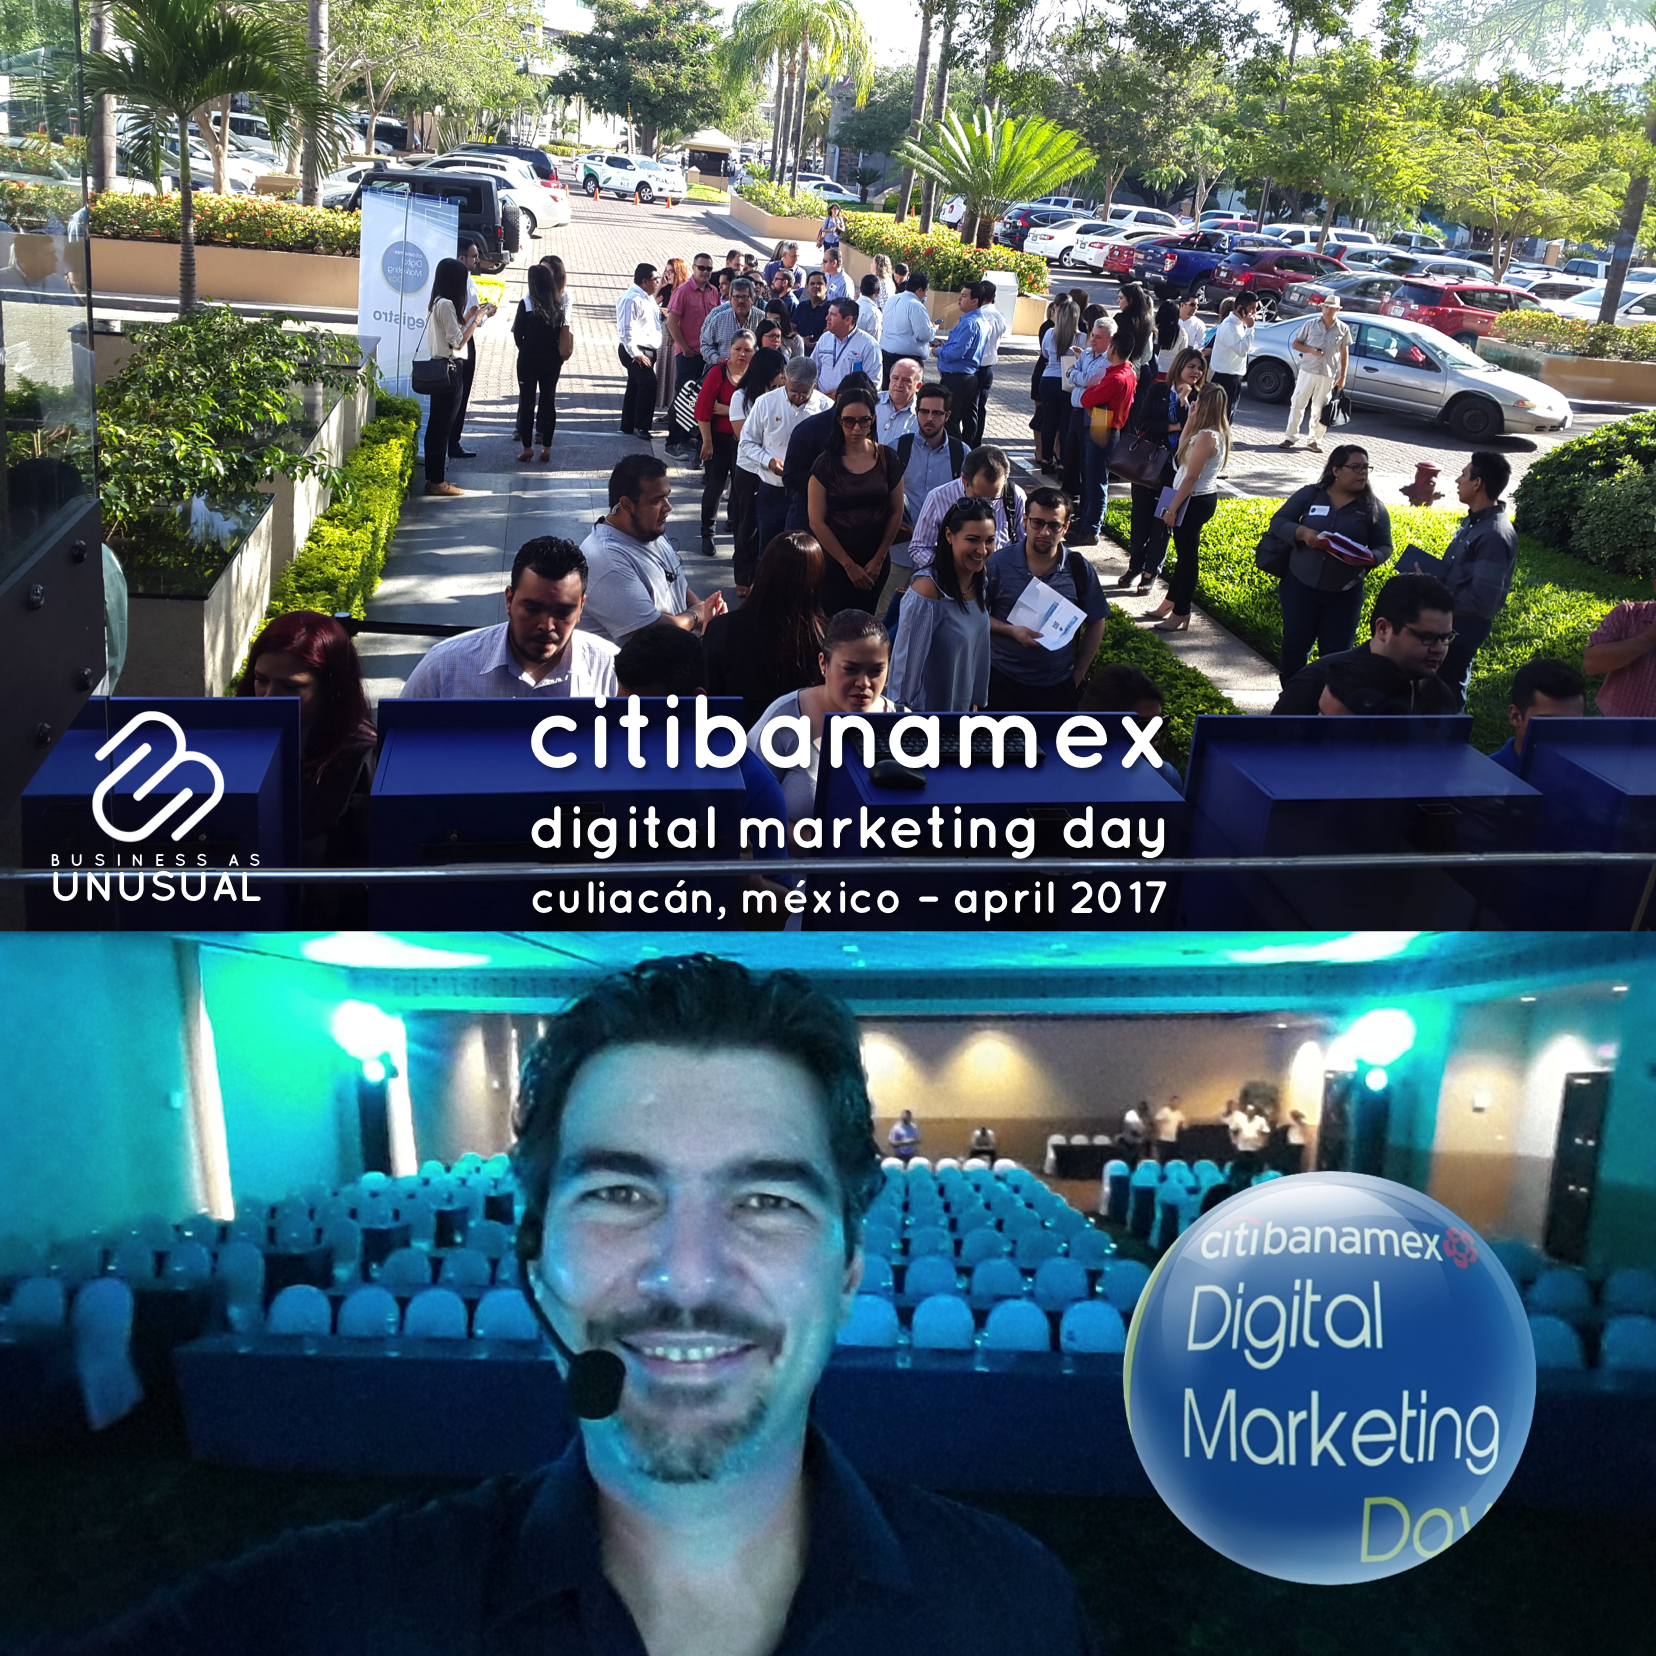 Citibanamex - Digital Marketing Day - Culiacán